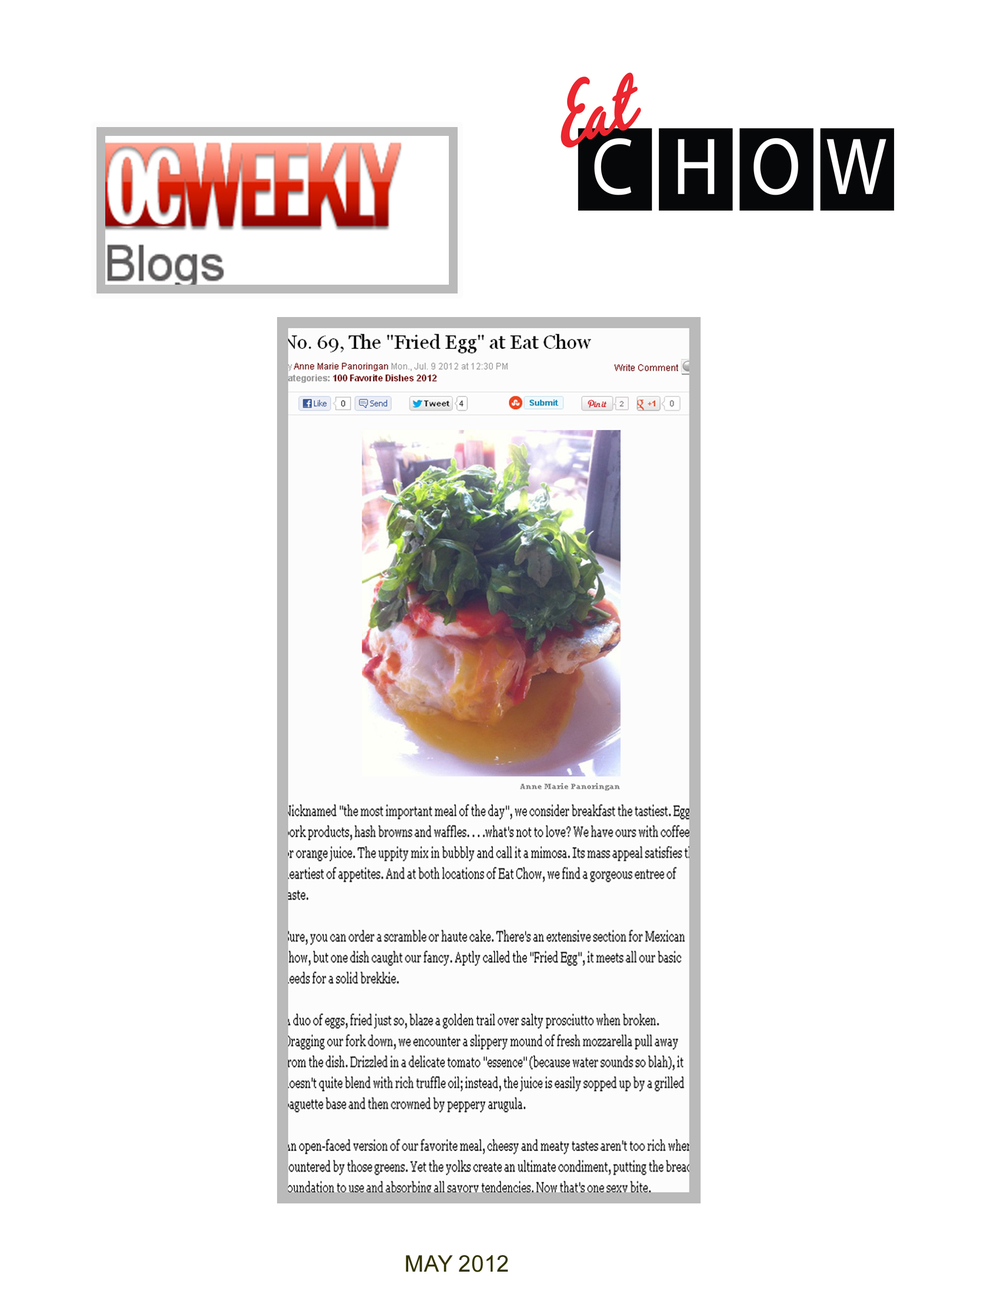 OCWeekly_July2012.jpg